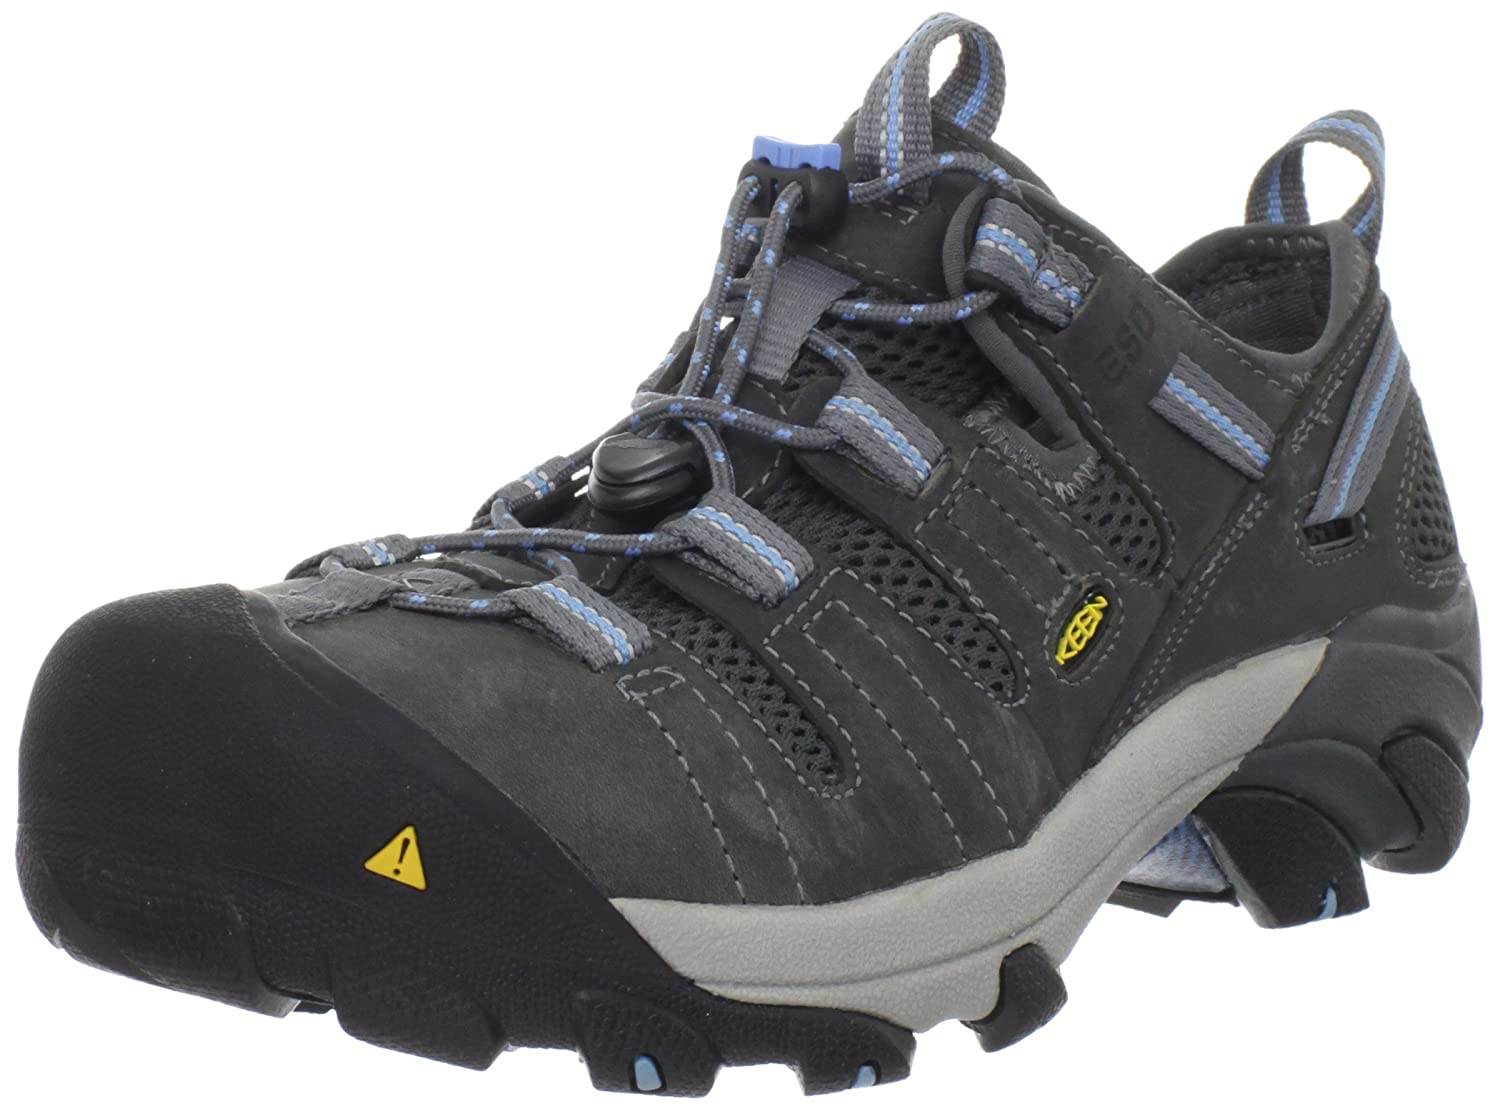 KEEN Utility Women's Atlanta Cool ESD Steel Toe Work Shoe B005BQP27E 6 W US|Gargoyle